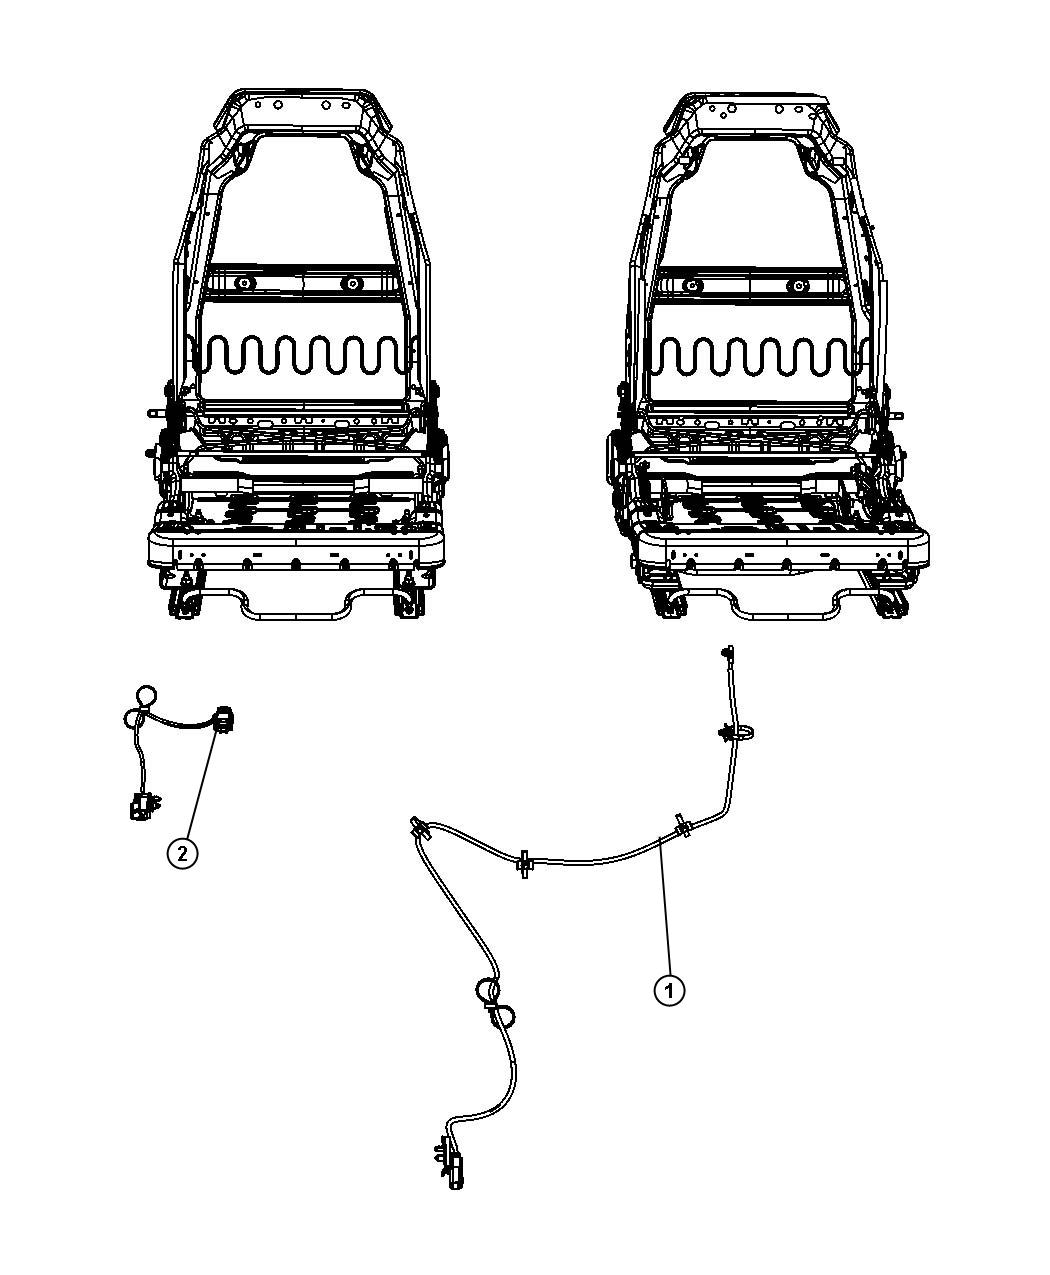 obd0 to obd1 conversion harness wiring diagram with Wiring Harness Vinyl on Nissan Maf Sensor Wiring Harness Connector in addition Obd1 B Series Engine Into Obd2a Obd2b Civic Integra     1972711 as well Obd0 To Obd1 Conversion Harness also 1jz Wiring Harness additionally 98 Civic Dx Fuse Diagram.